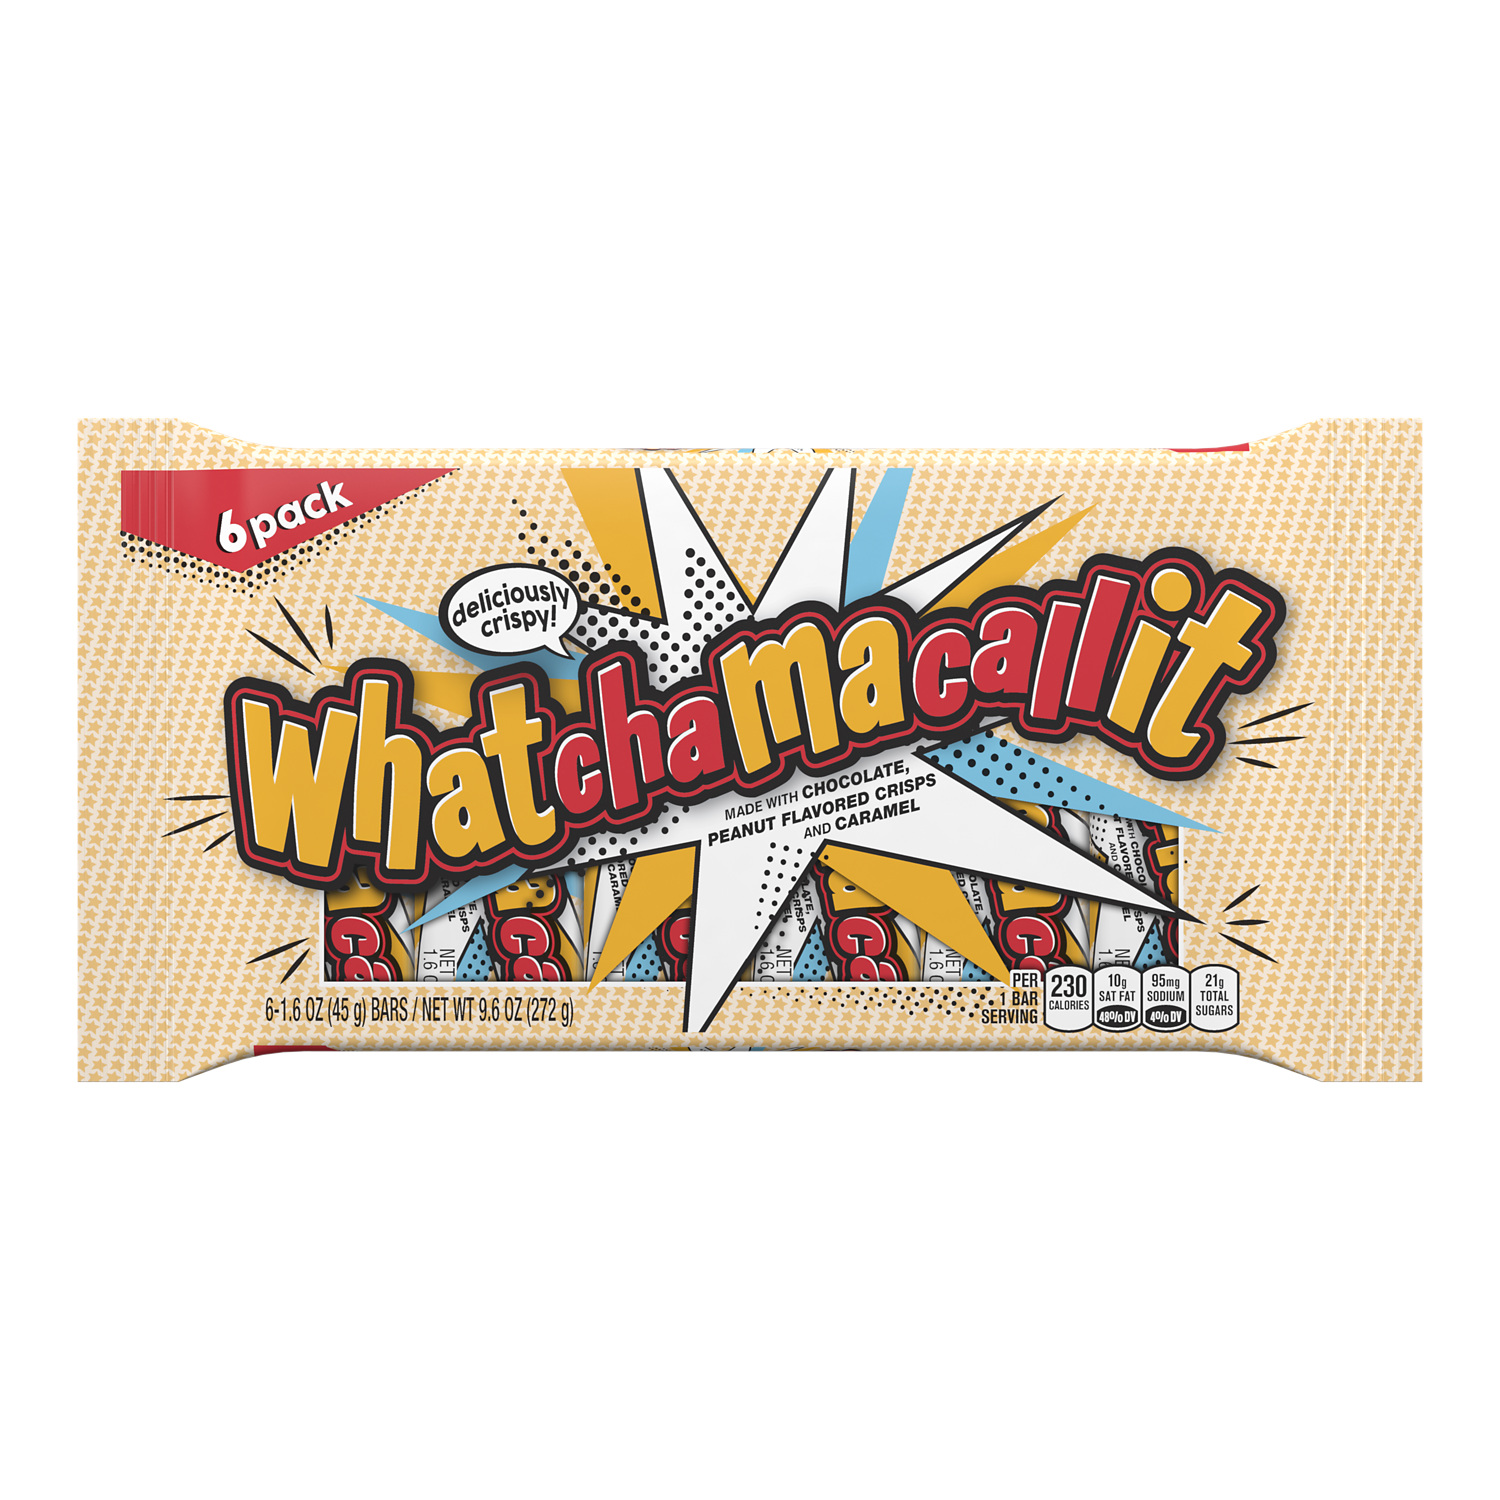 WHATCHAMACALLIT Candy Bars, 9.9 oz, 6 pack - Front of Package